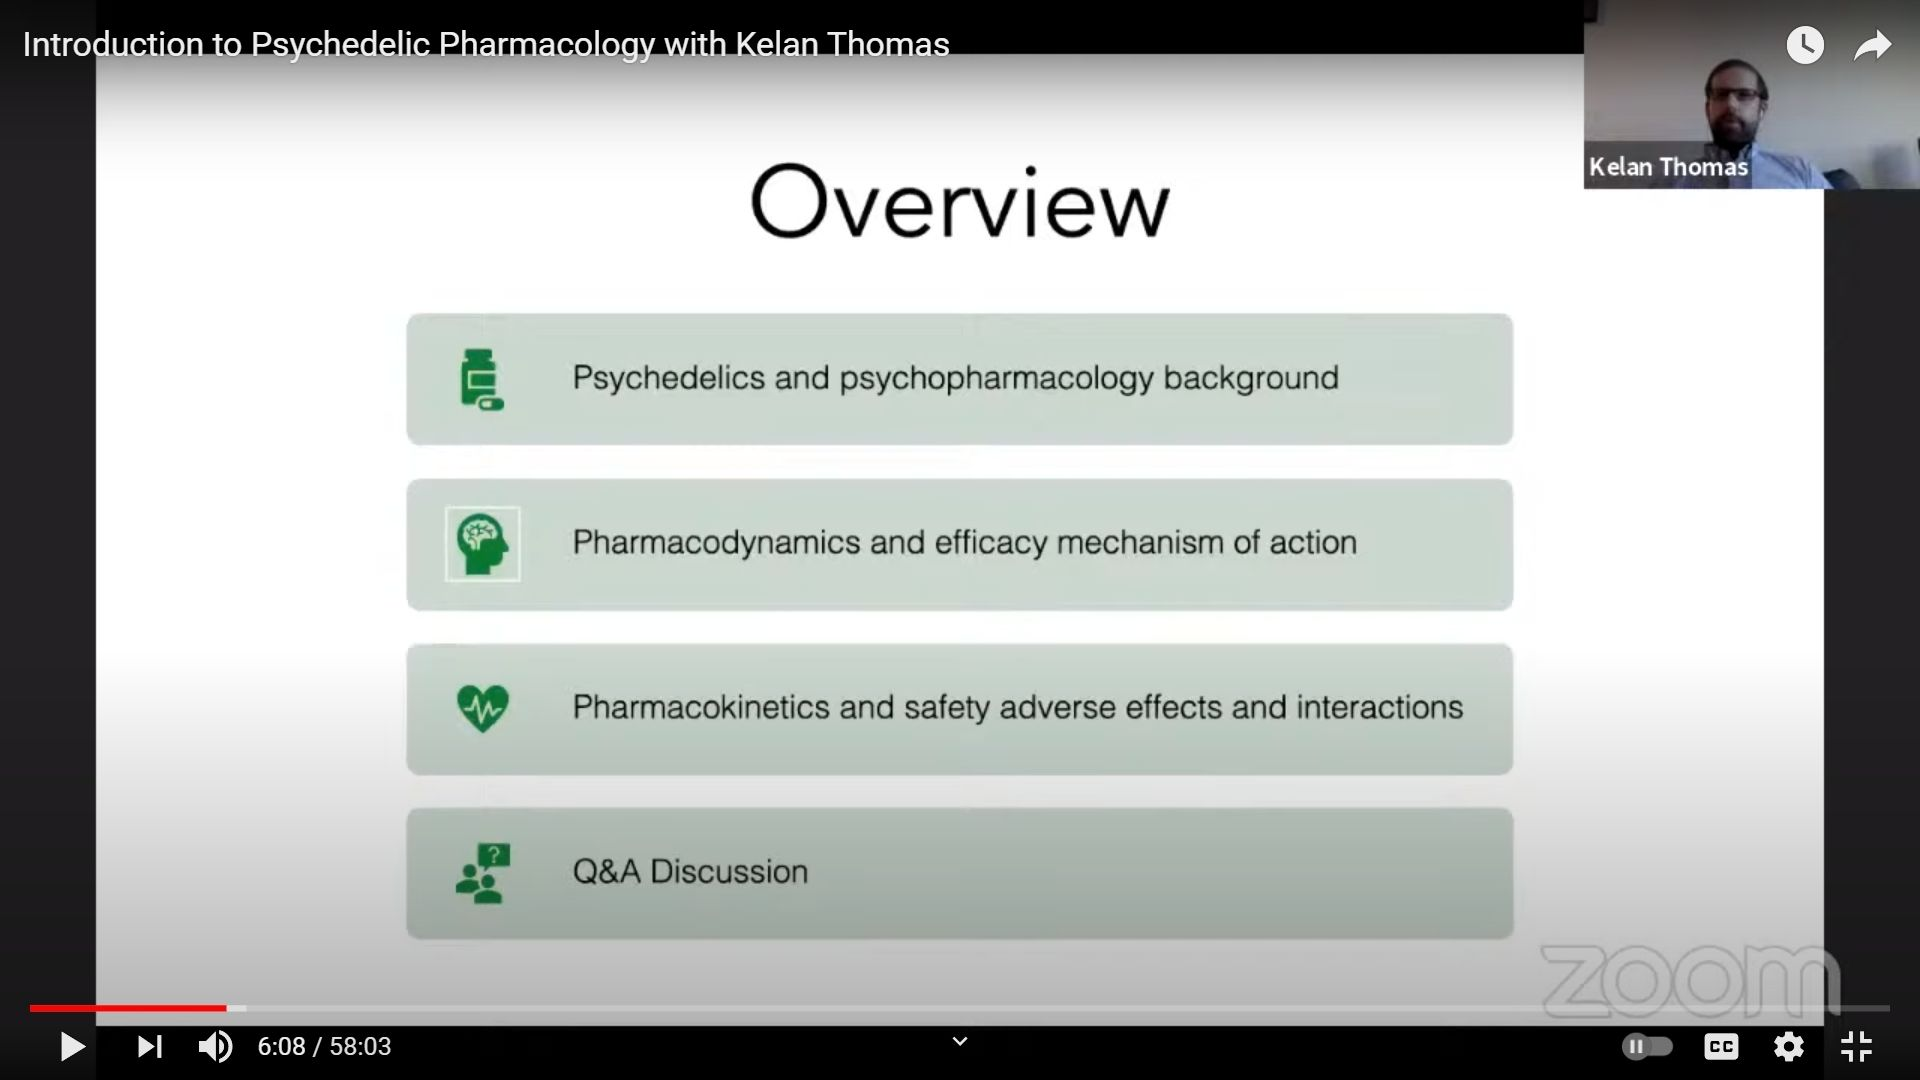 Introduction to Psychedelic Pharmacology with Kelan Thomas